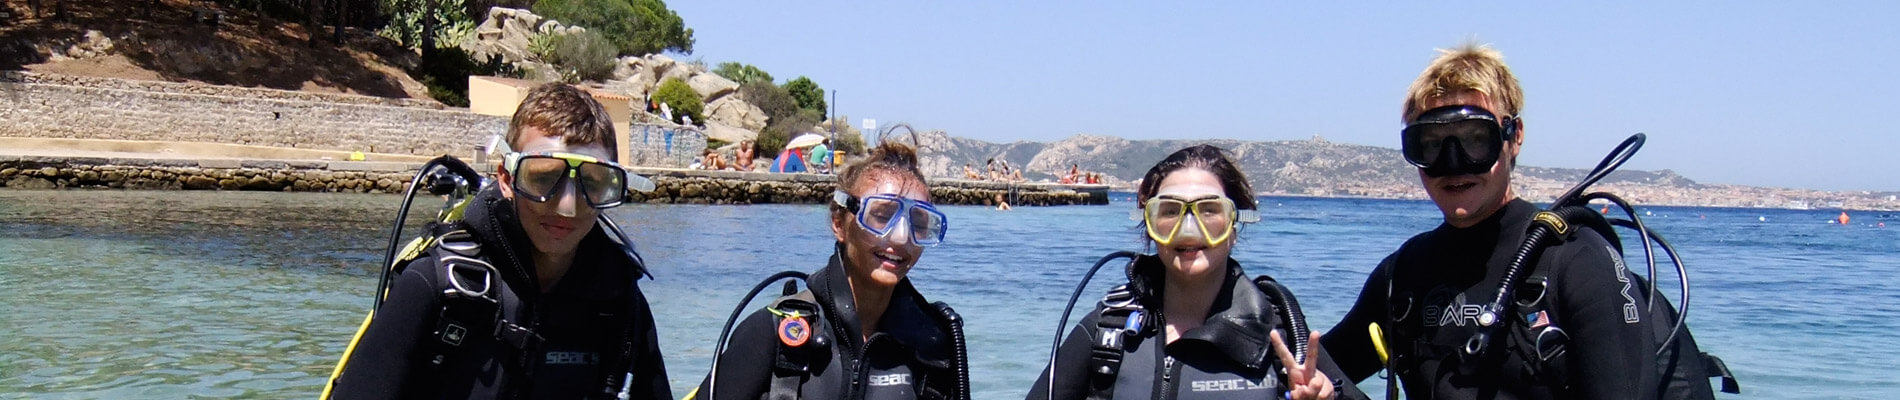 headerimage16 Padi Open Water Course Palau Sardinia